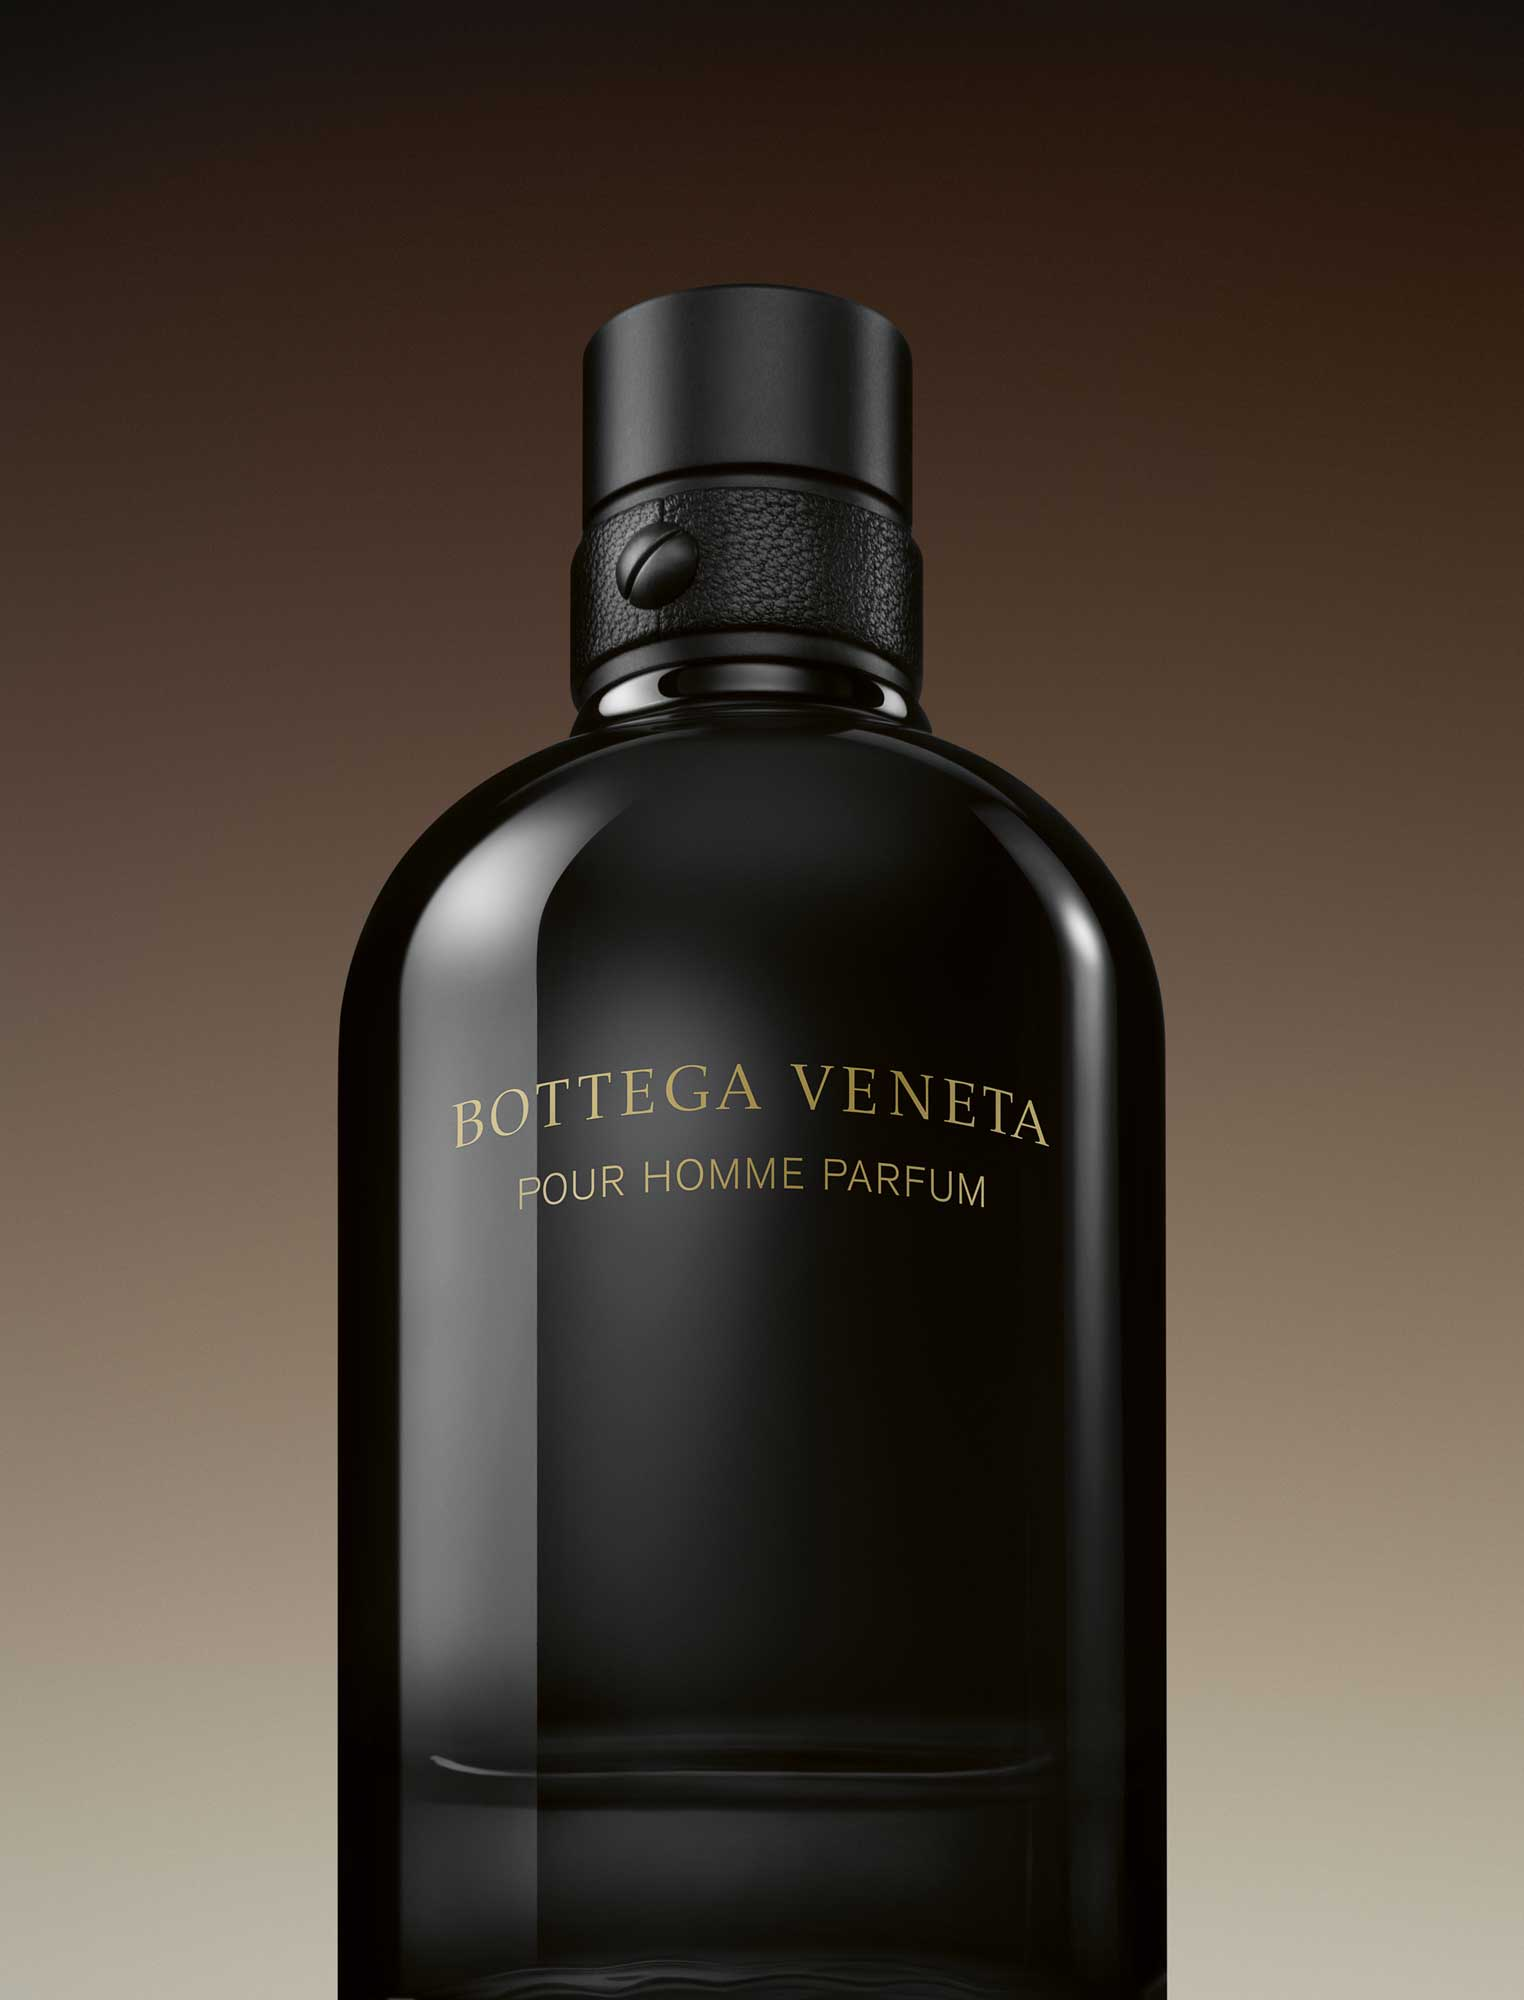 13833069988 ... Bottega Veneta Pour Homme Parfum Bottega Veneta for men Pictures ...